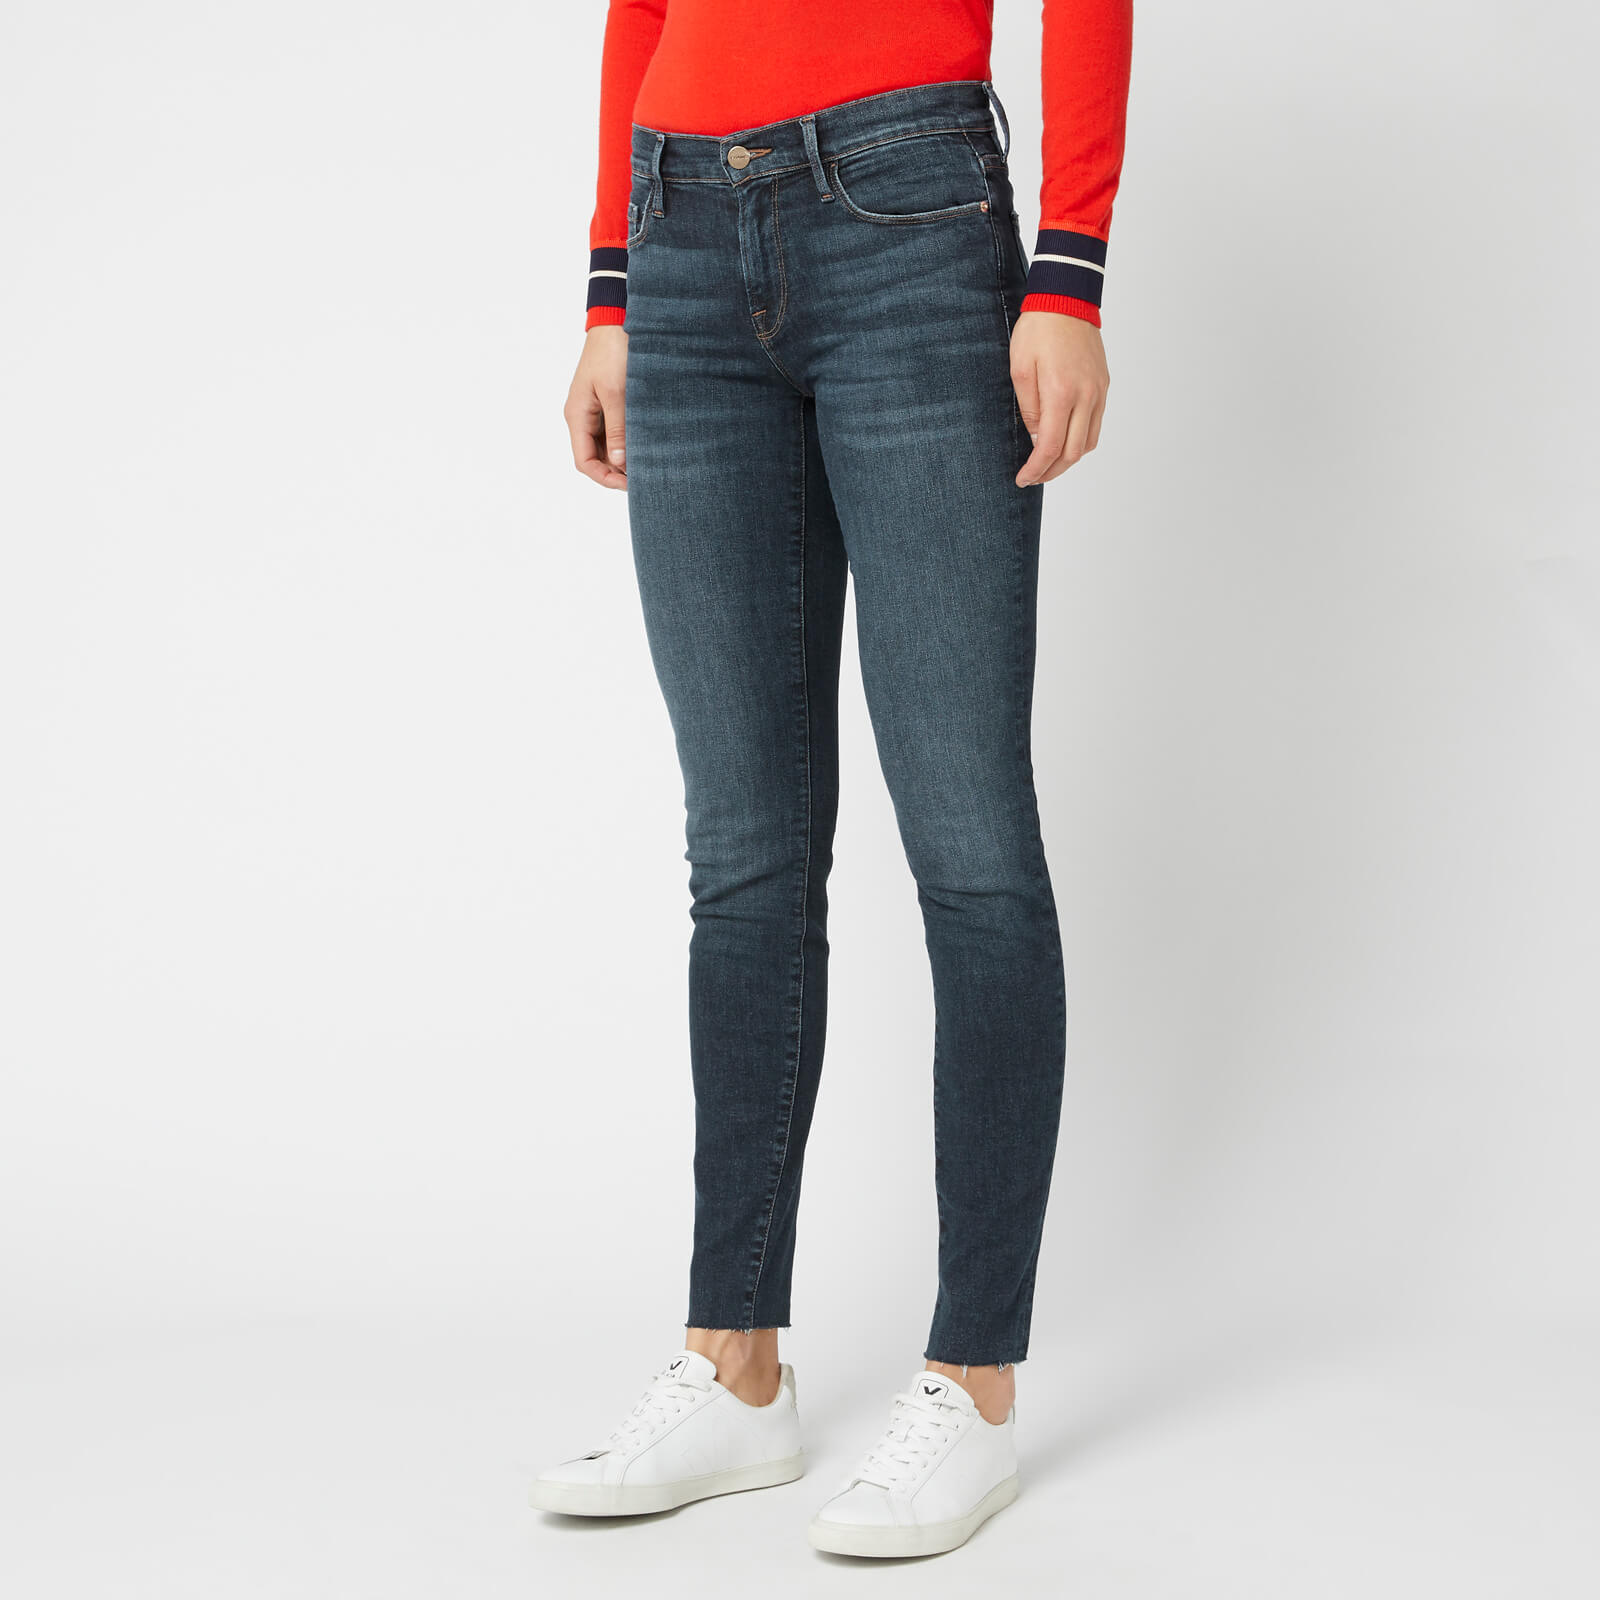 c7022927 Frame Women's Le Skinny De Jeanne Raw Edge Jeans - Remi - Free UK Delivery  over £50